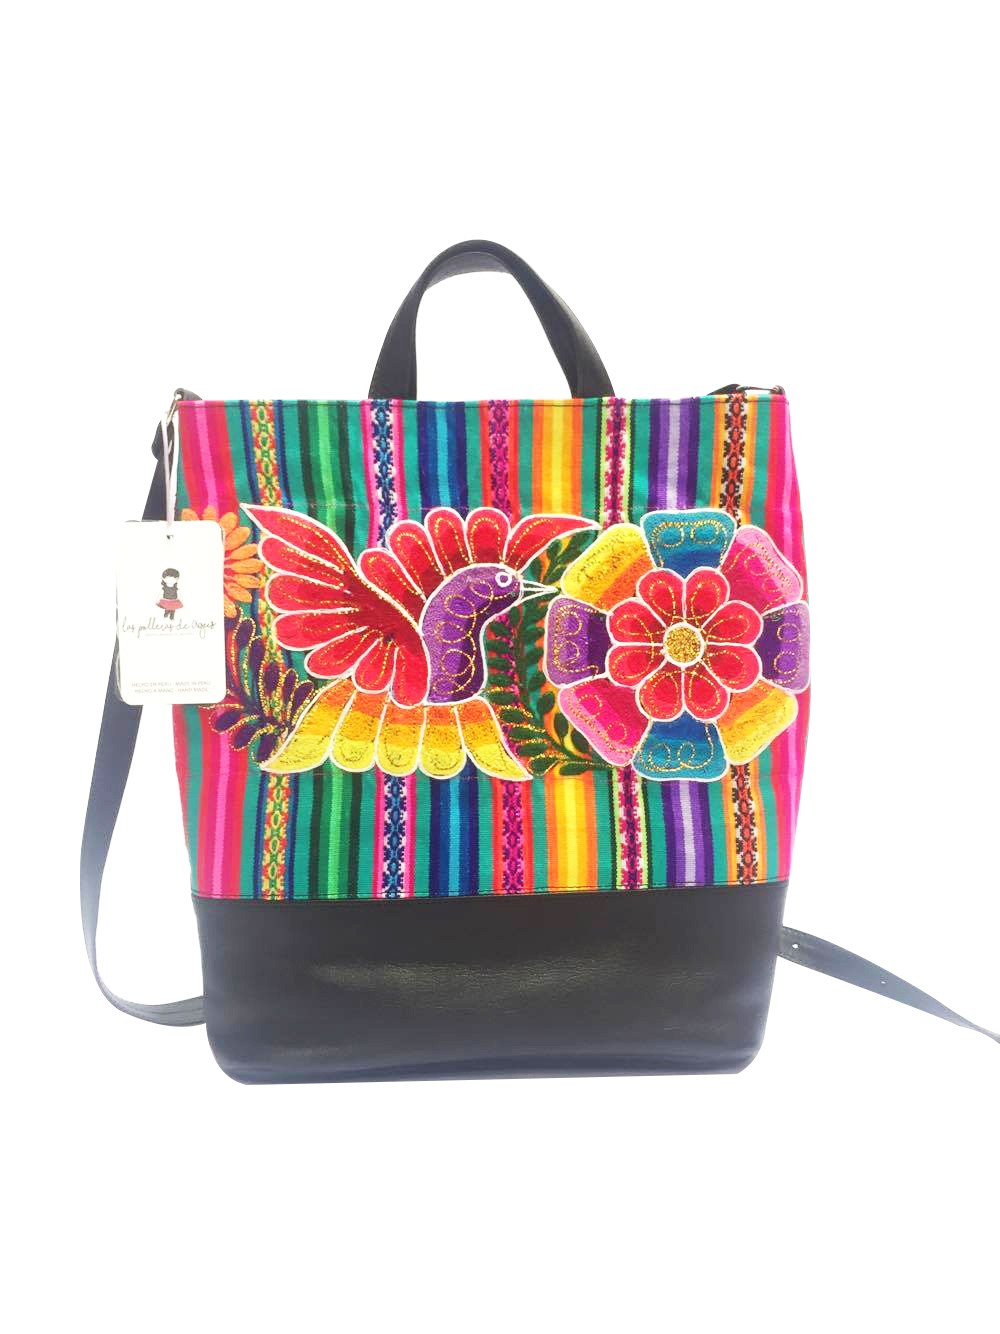 Guillerina bag